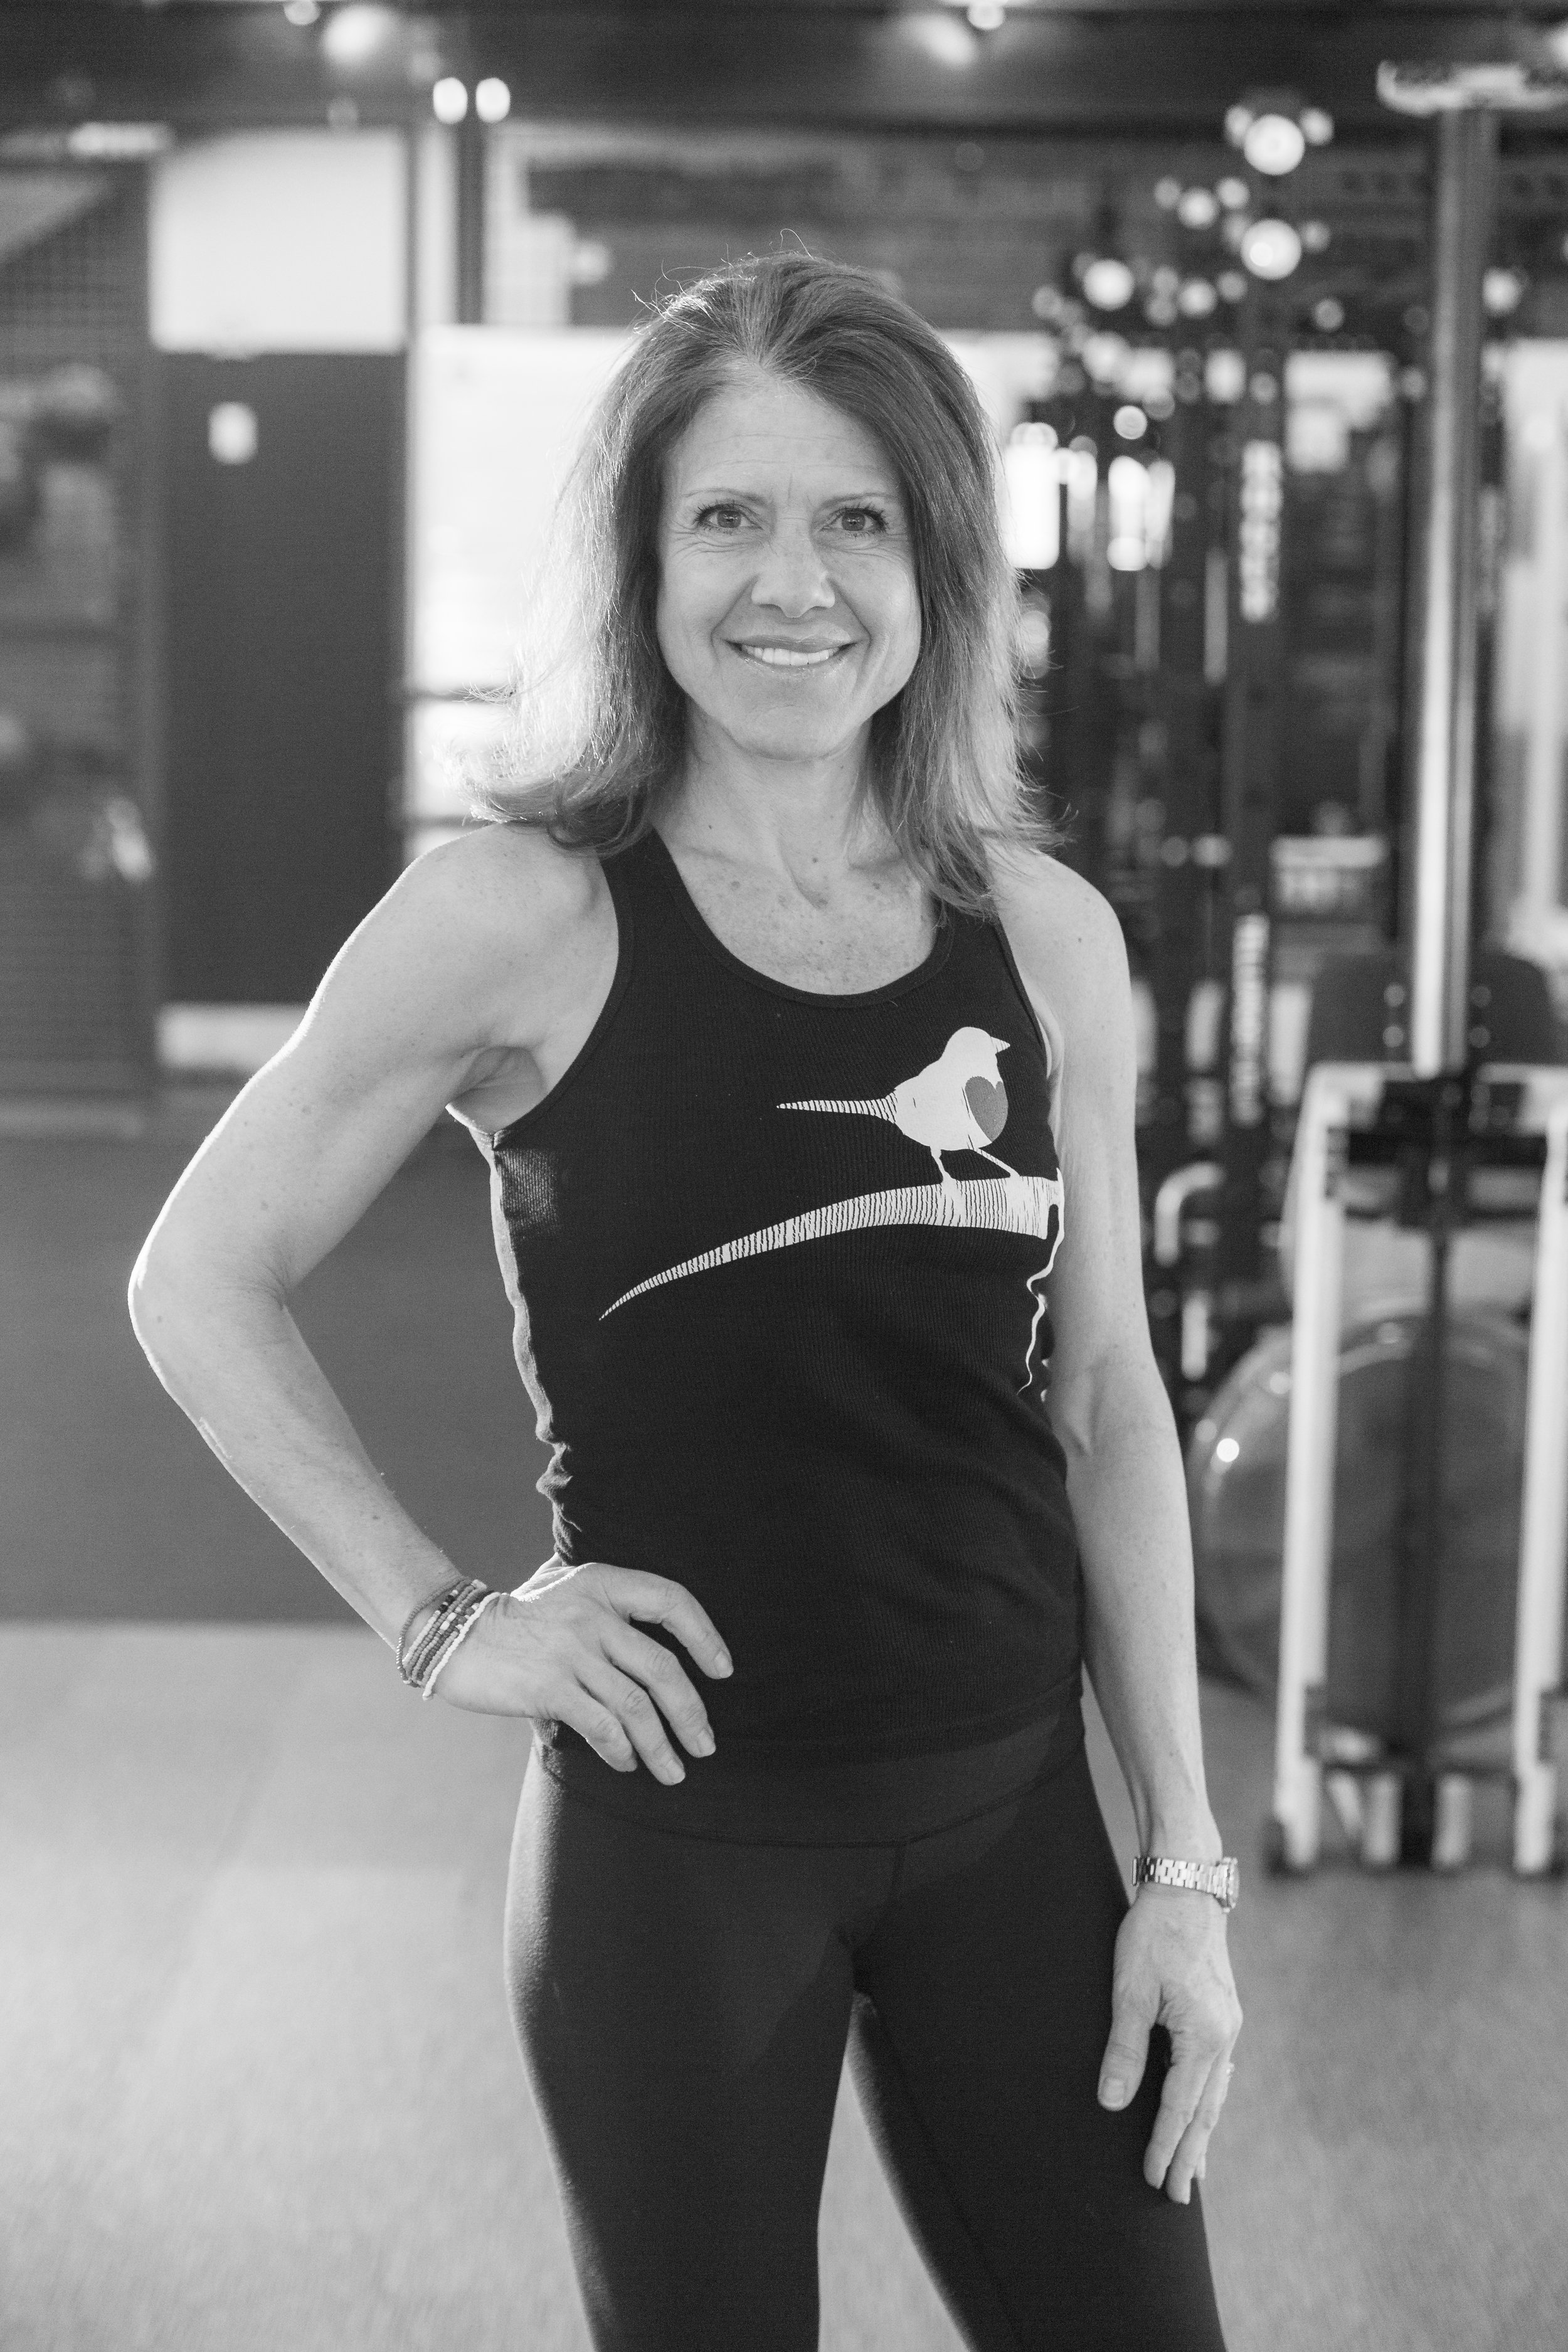 Kristine Hilbert  -Boot Camp  I'm a 21 year resident of Telluride with a loving passion for all outdoor sports. I find drive in the mountains and use sports like skiing, hiking, biking and yoga to fuel this love. My time at Fuel is dedicated to making a stronger body and mind to pursue these activities into the future. I love to inspire others with my zest for adventure, health and fitness. Equally, I am inspired by all the members walking into fuel everyday with their varied fitness and life goals!